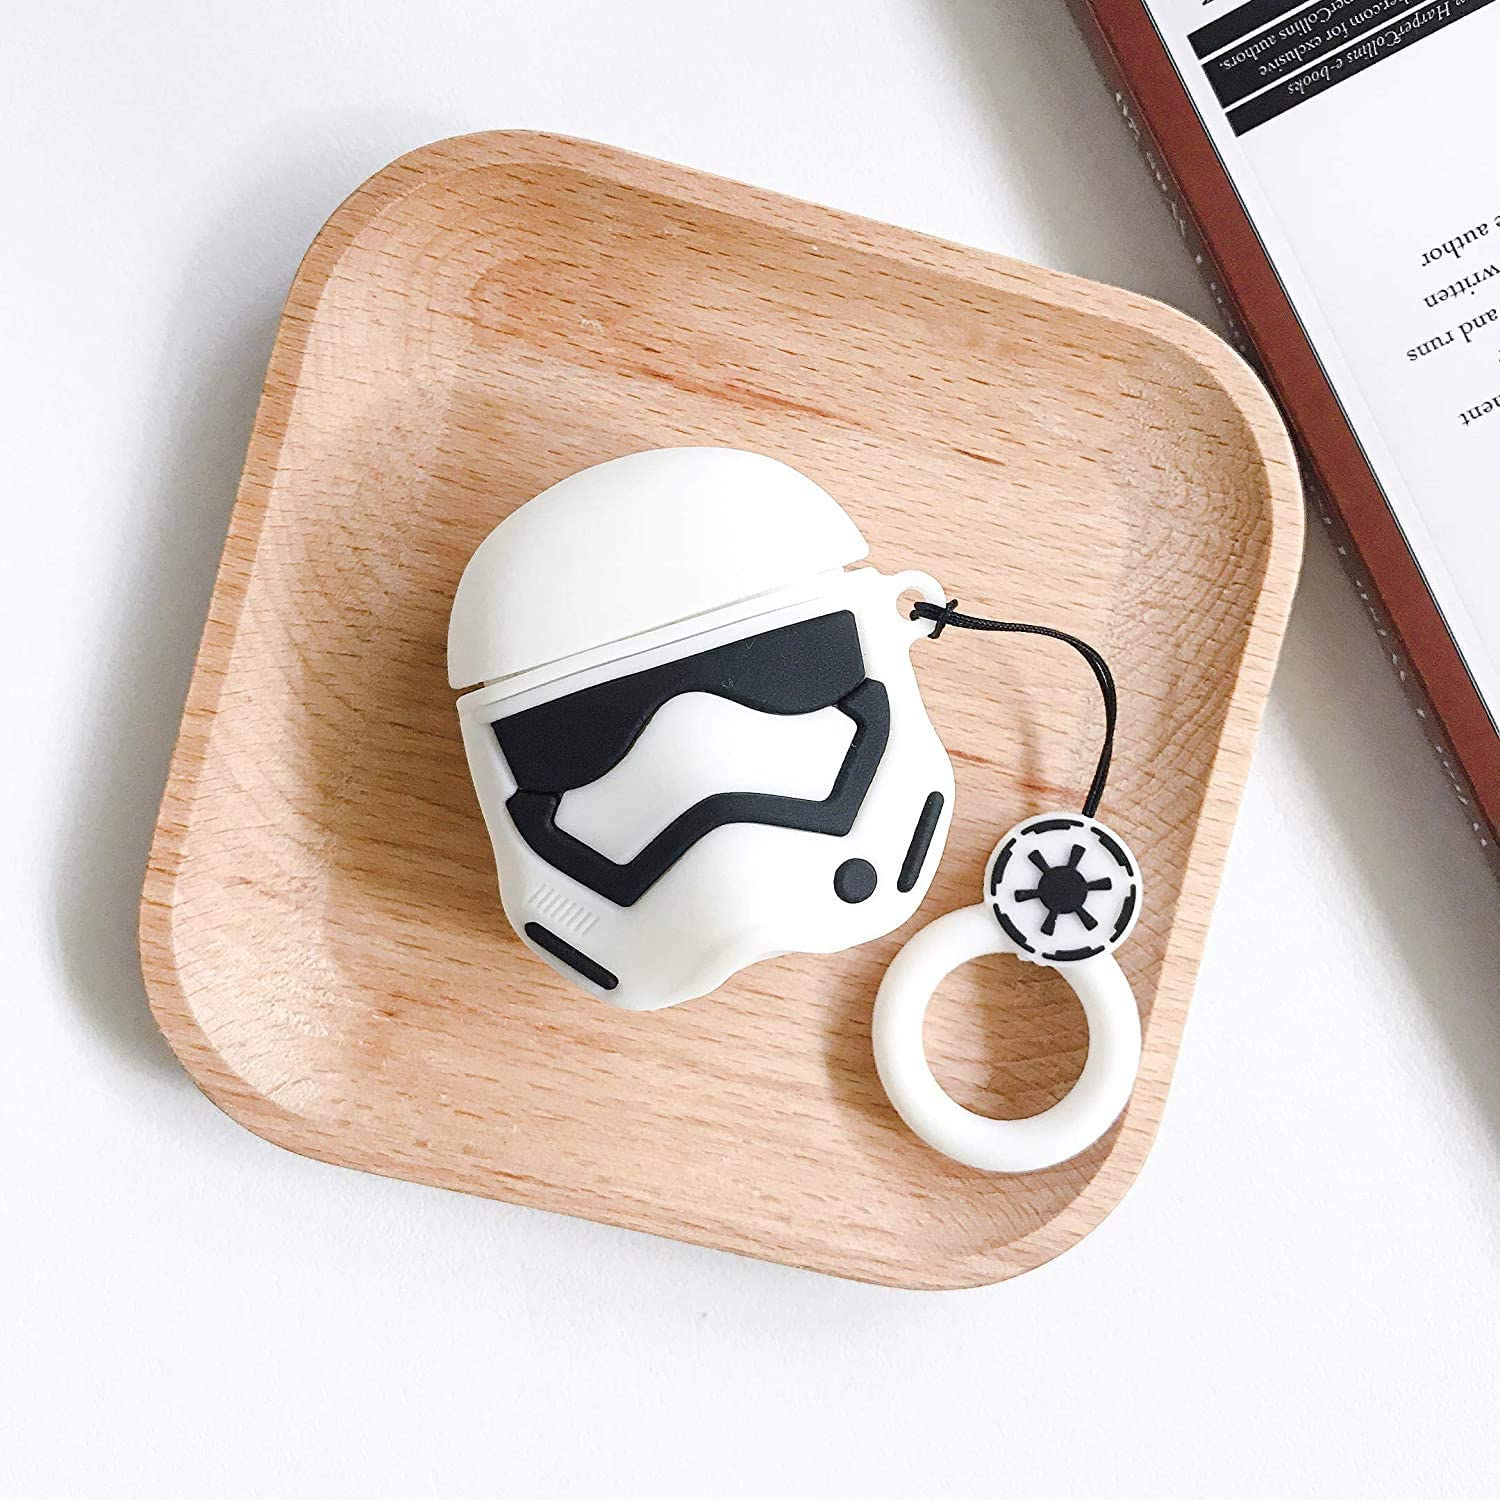 HotelPaw White SW Storm Trooper AirPods Case Cover - Cartoon Series - 3D Cute Cartoon Character AirPods Silicone Case/Skin/Cover for Girls, Boys, Kids, Teens (Compatible with AirPods Gen 1 and 2)